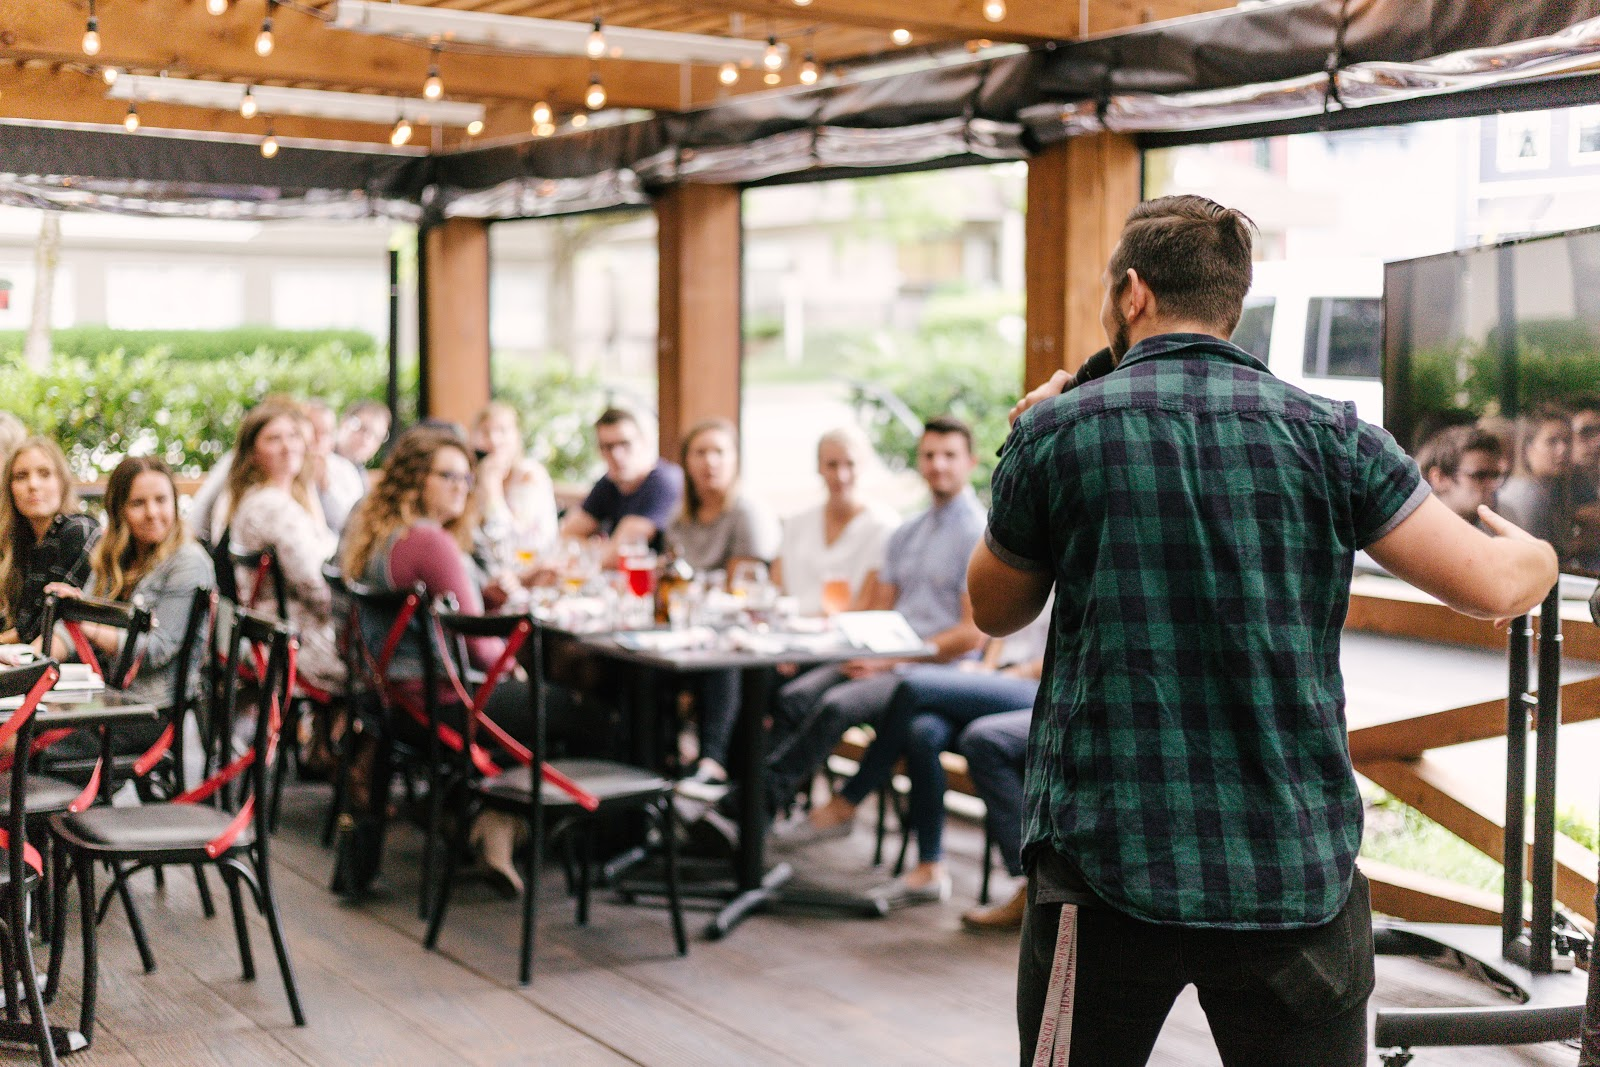 Get a keynote speaker to headline your event